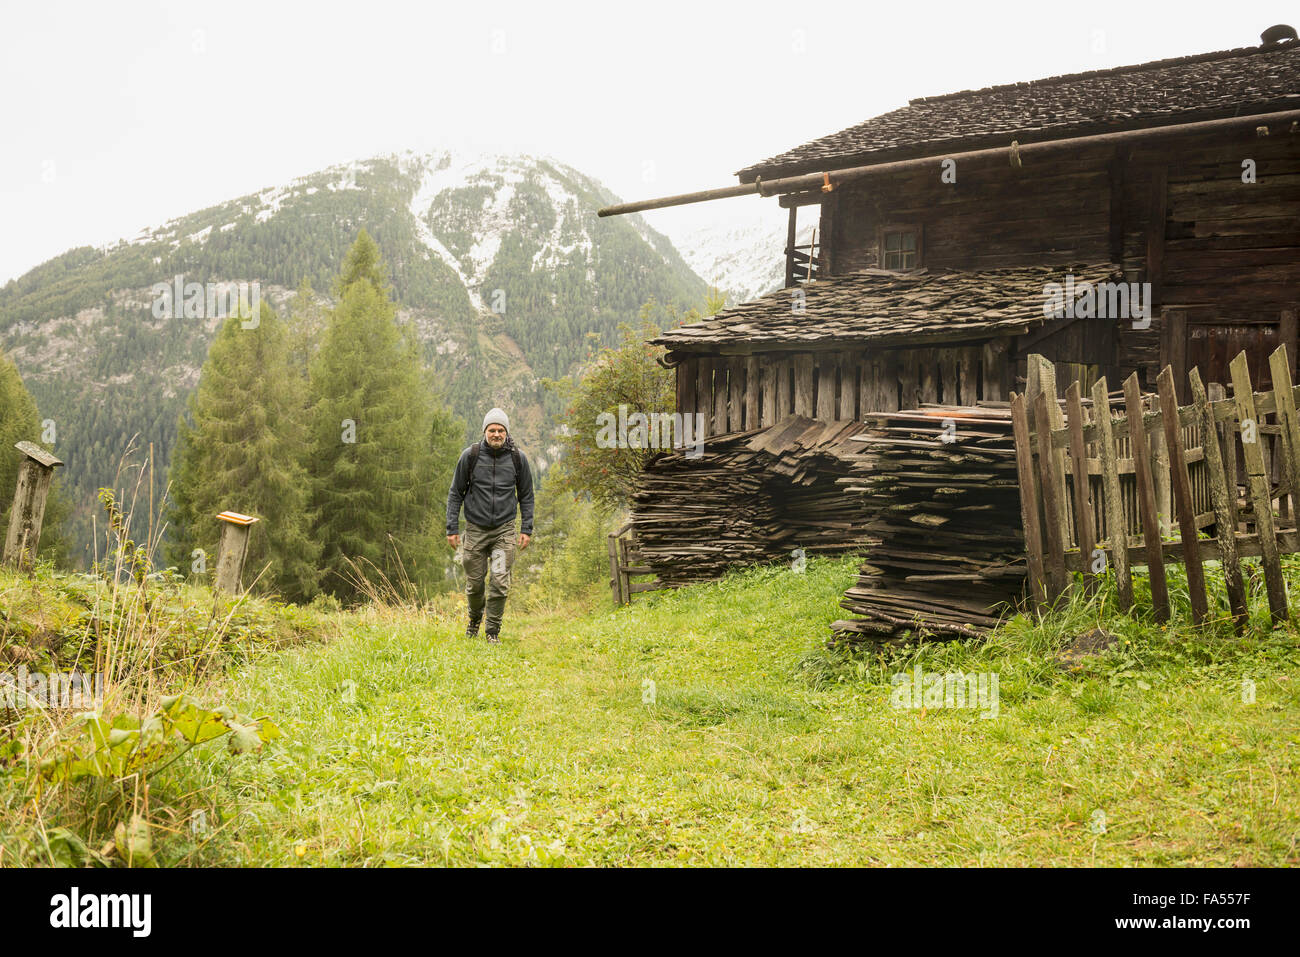 Mature hiker passing by cottage at rainy day, Austrian alps, Carinthia, Austria - Stock Image